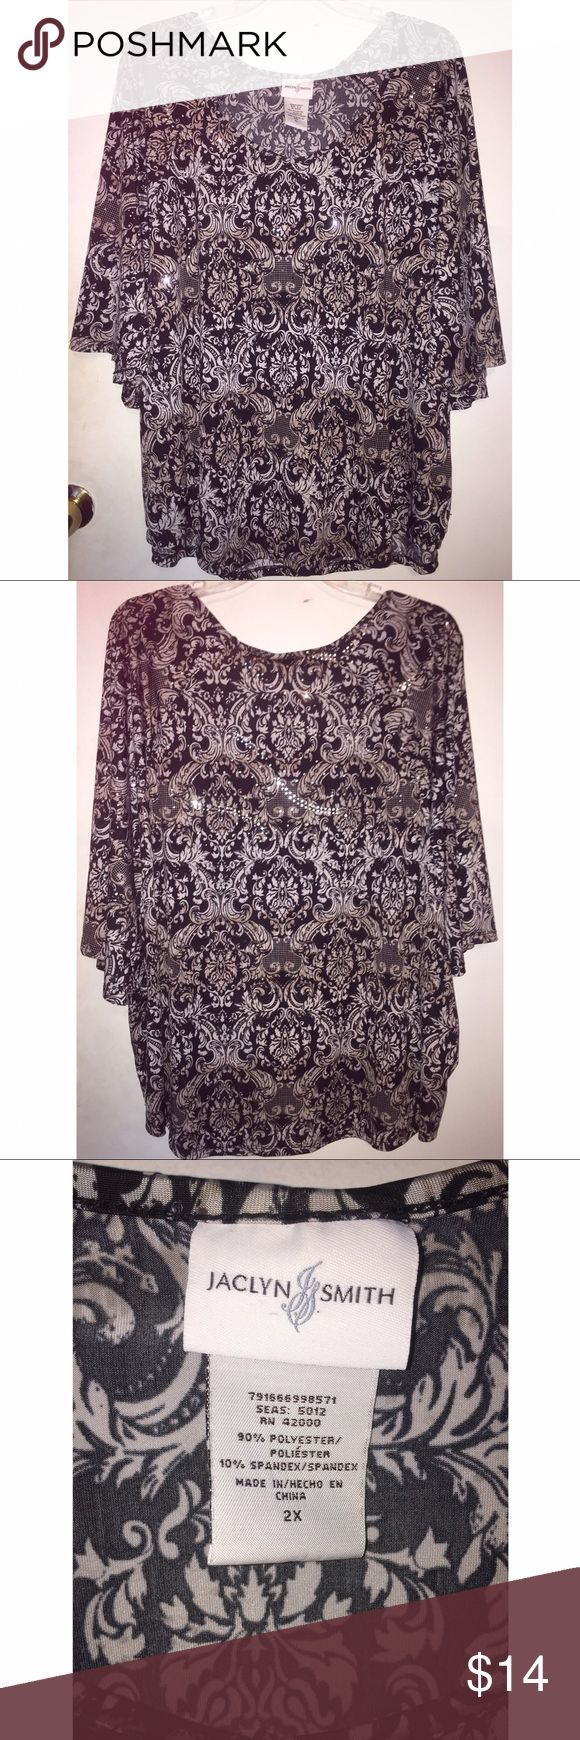 Women's Blouse Women's blouse in good condition. Size 2x Jaclyn Smith Tops Blouses